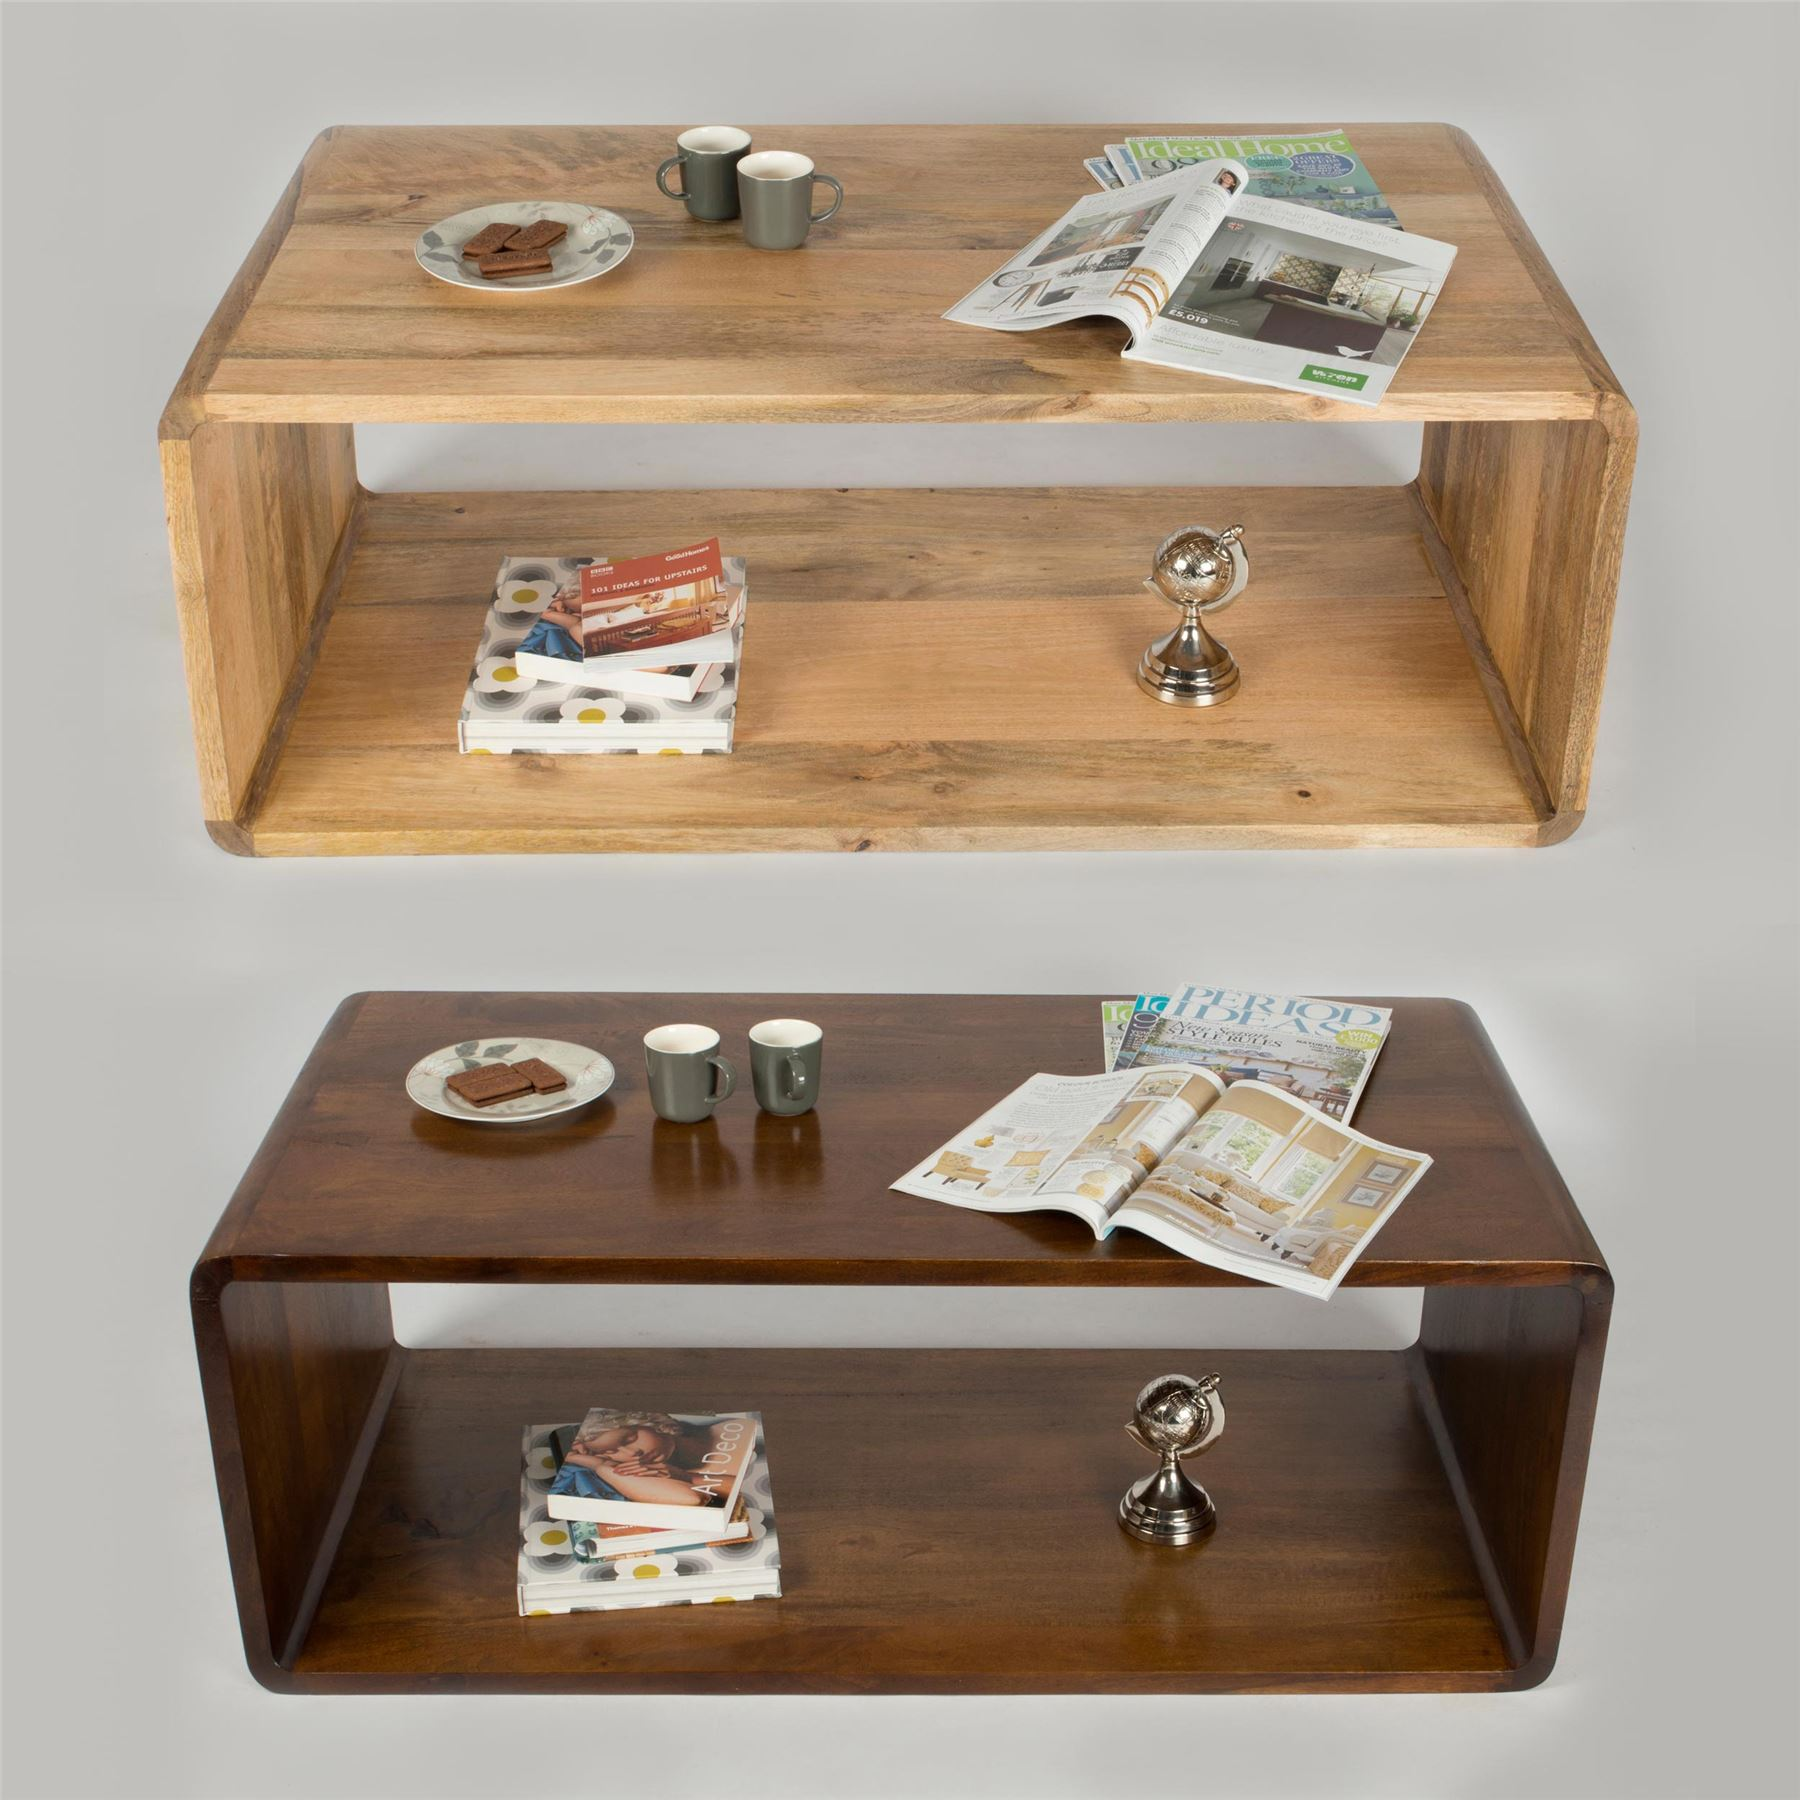 Rectangular Cube Shaped Coffee Table, Hollow Curved Edge